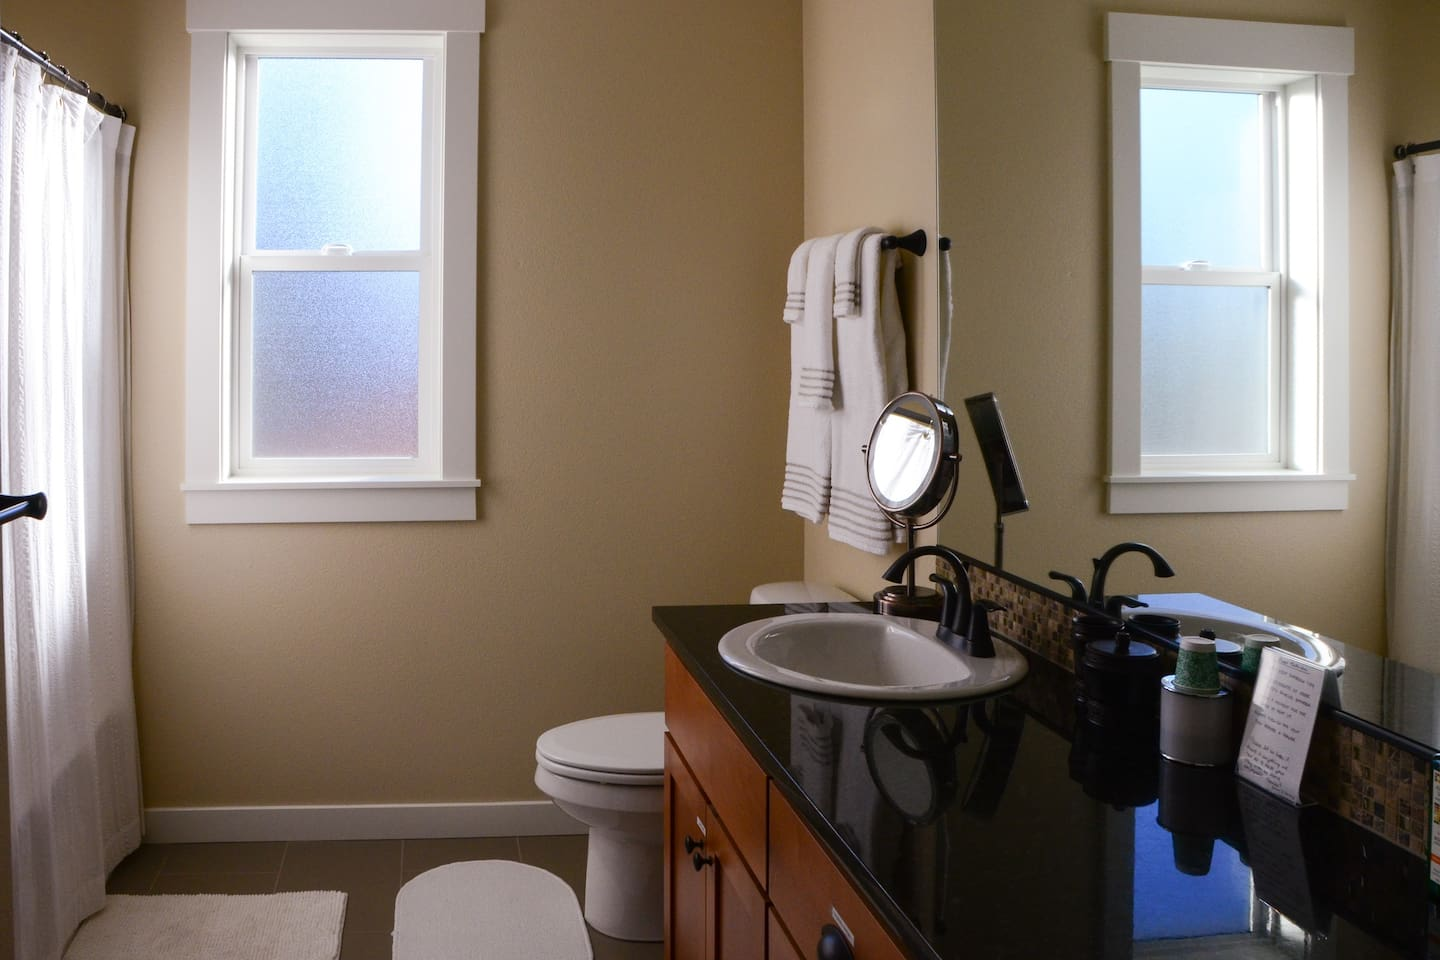 Full bathroom with shower, tub, and double sinks. Hospitality soaps, shampoos and toothpaste are available for your use. Guests typically have private use of bathroom, unless the second guest room is also booked.